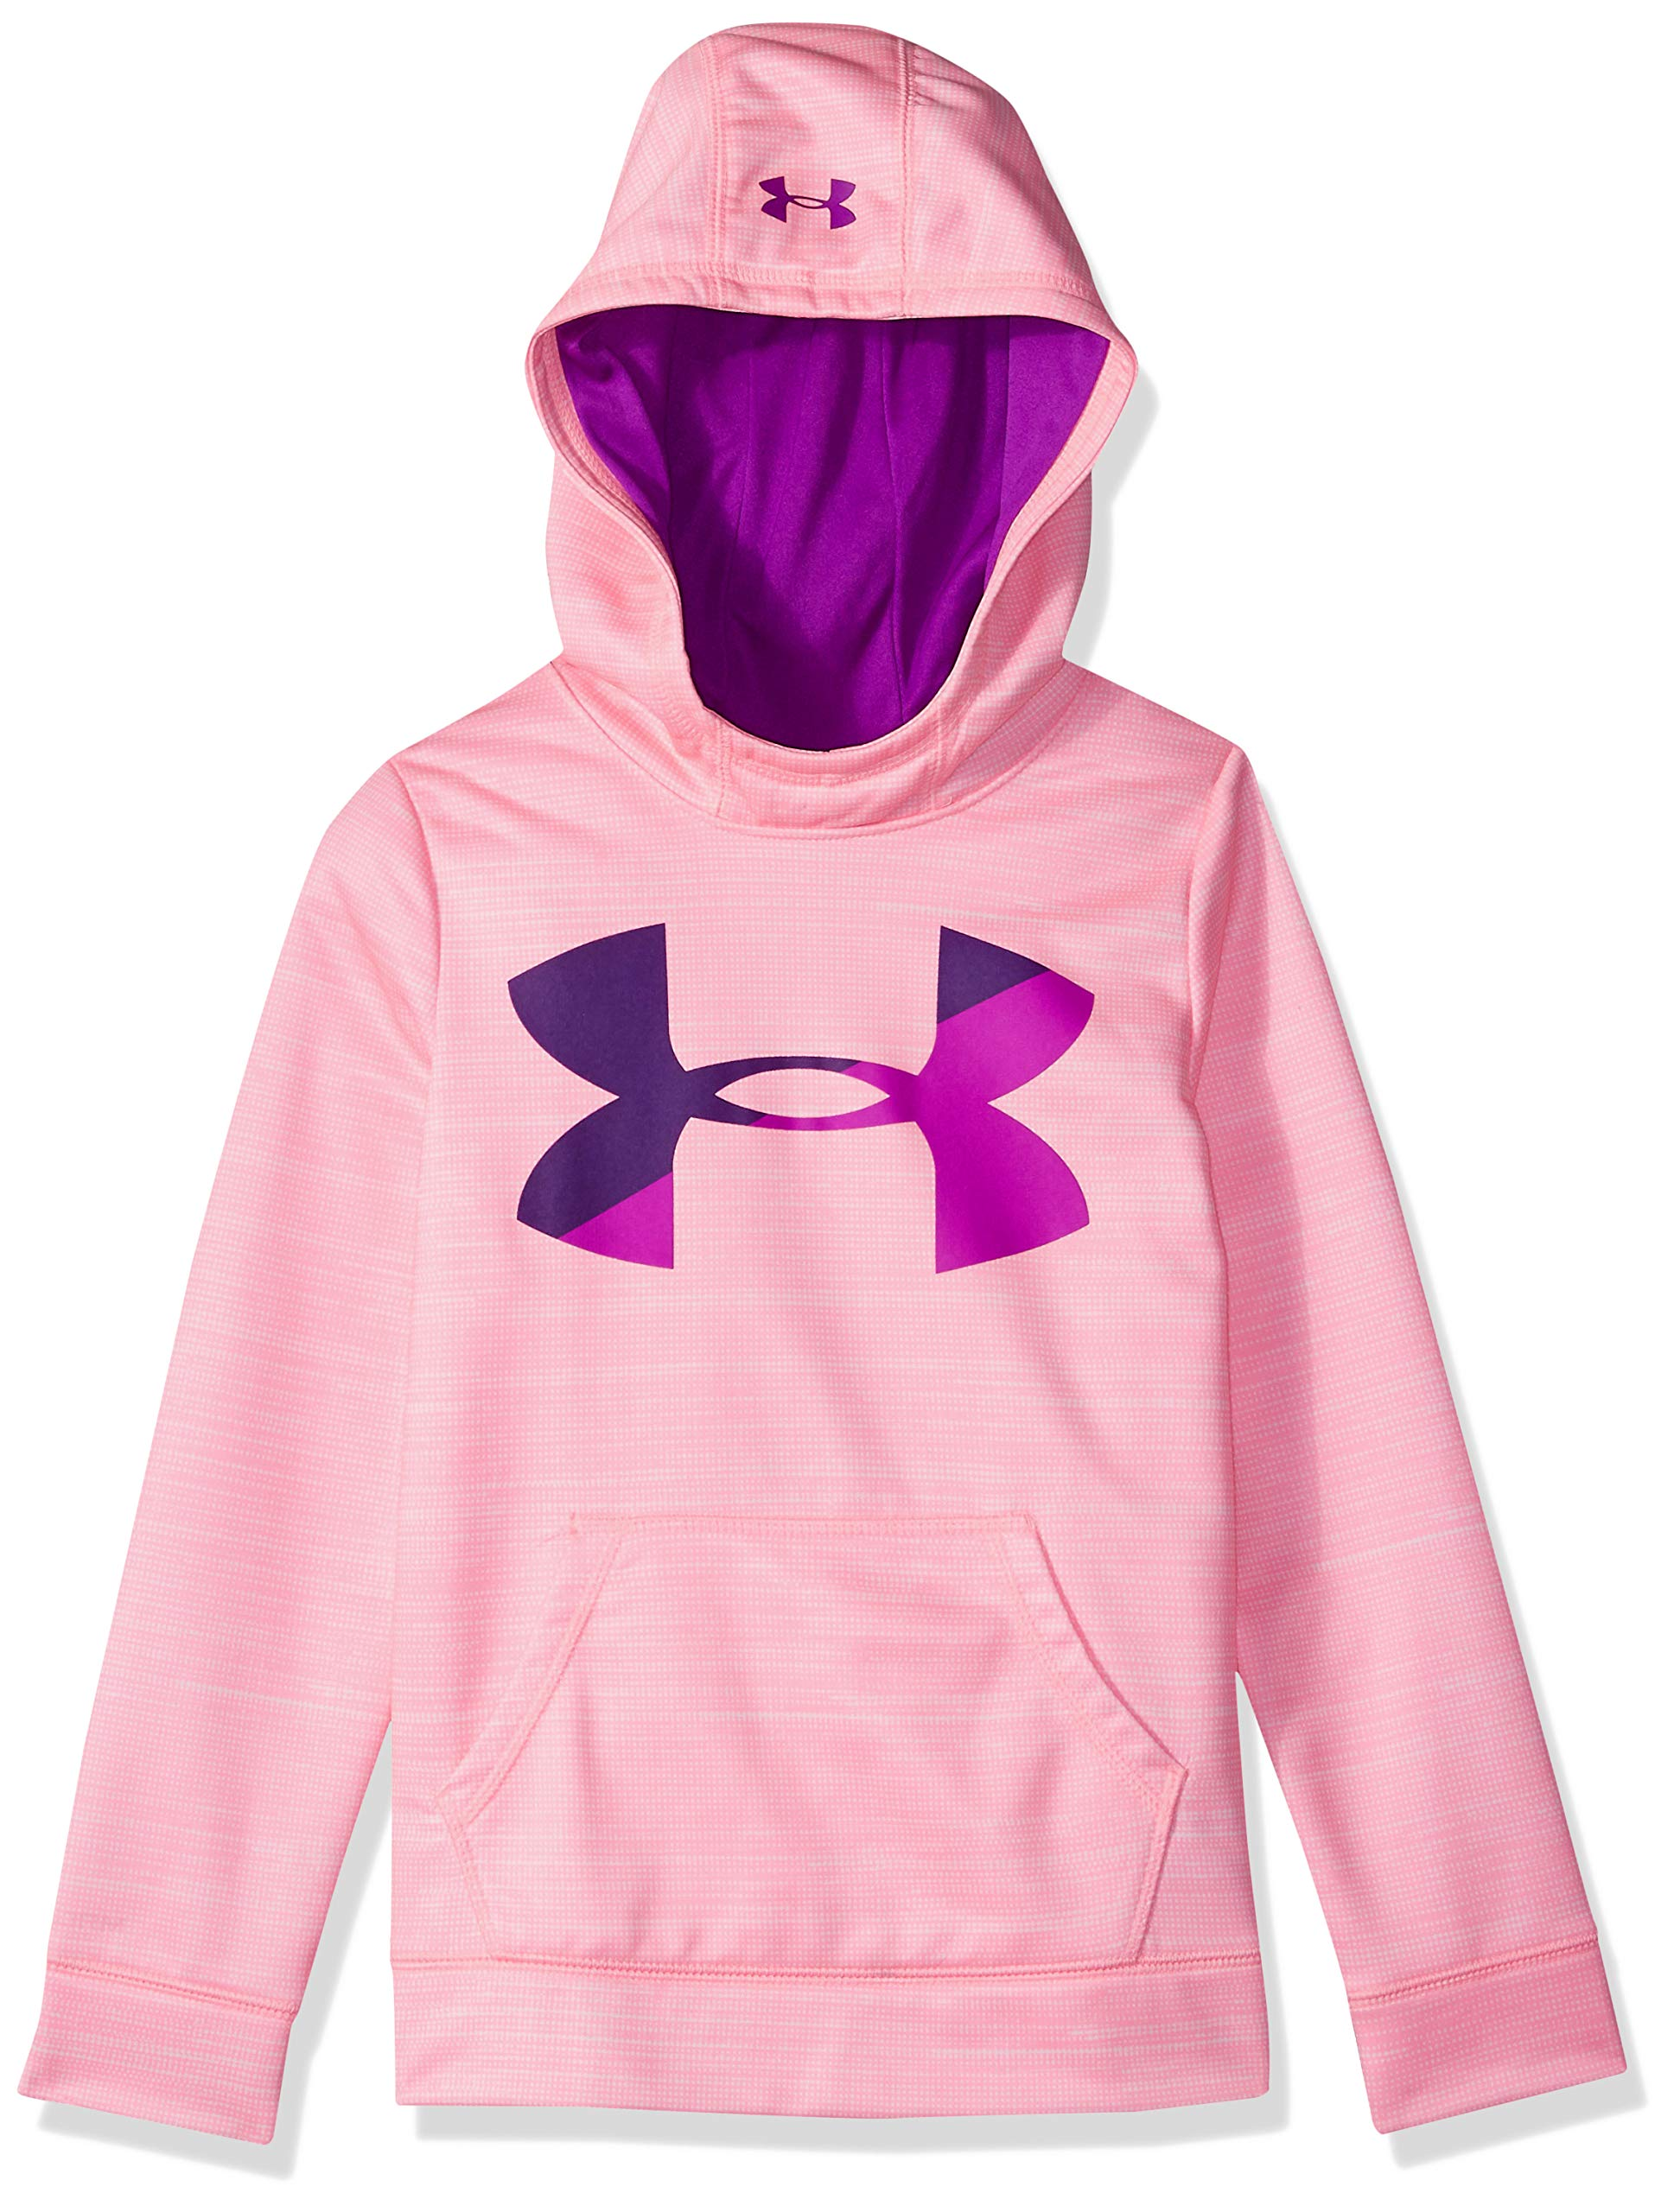 Under Armour Girls' Armour Fleece Big Logo Novelty Hoodie,Pop Pink /Purple Rave, Youth Small by Under Armour